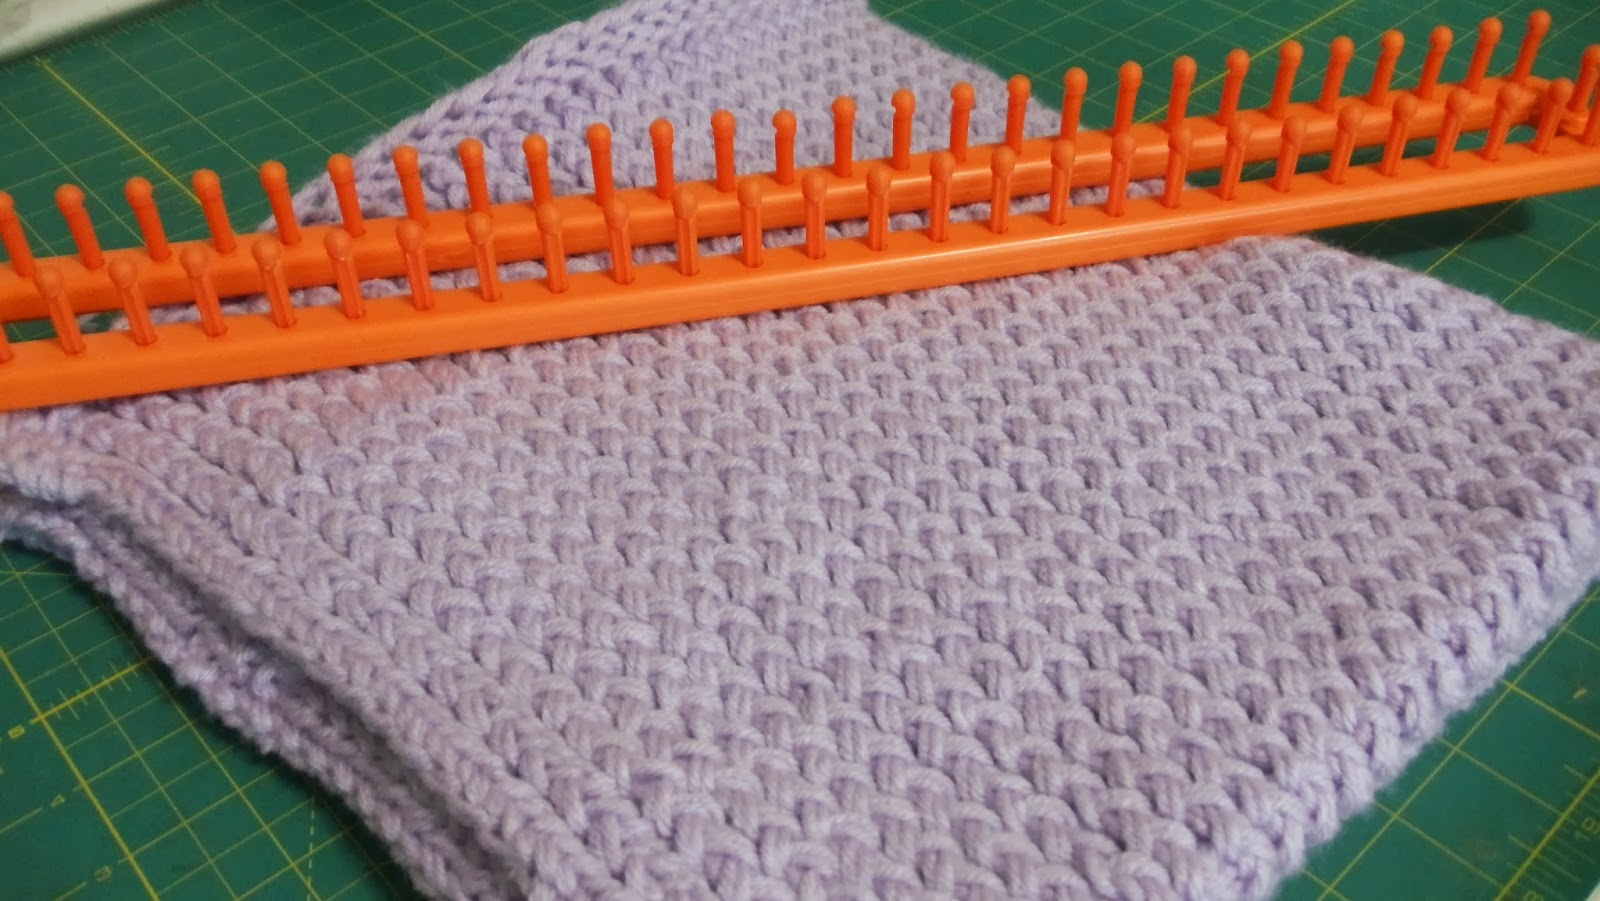 Crocheting On A Loom : Knitting, Loom Knitting, Crochet, Sewing : Loom Knit Baby Blanket